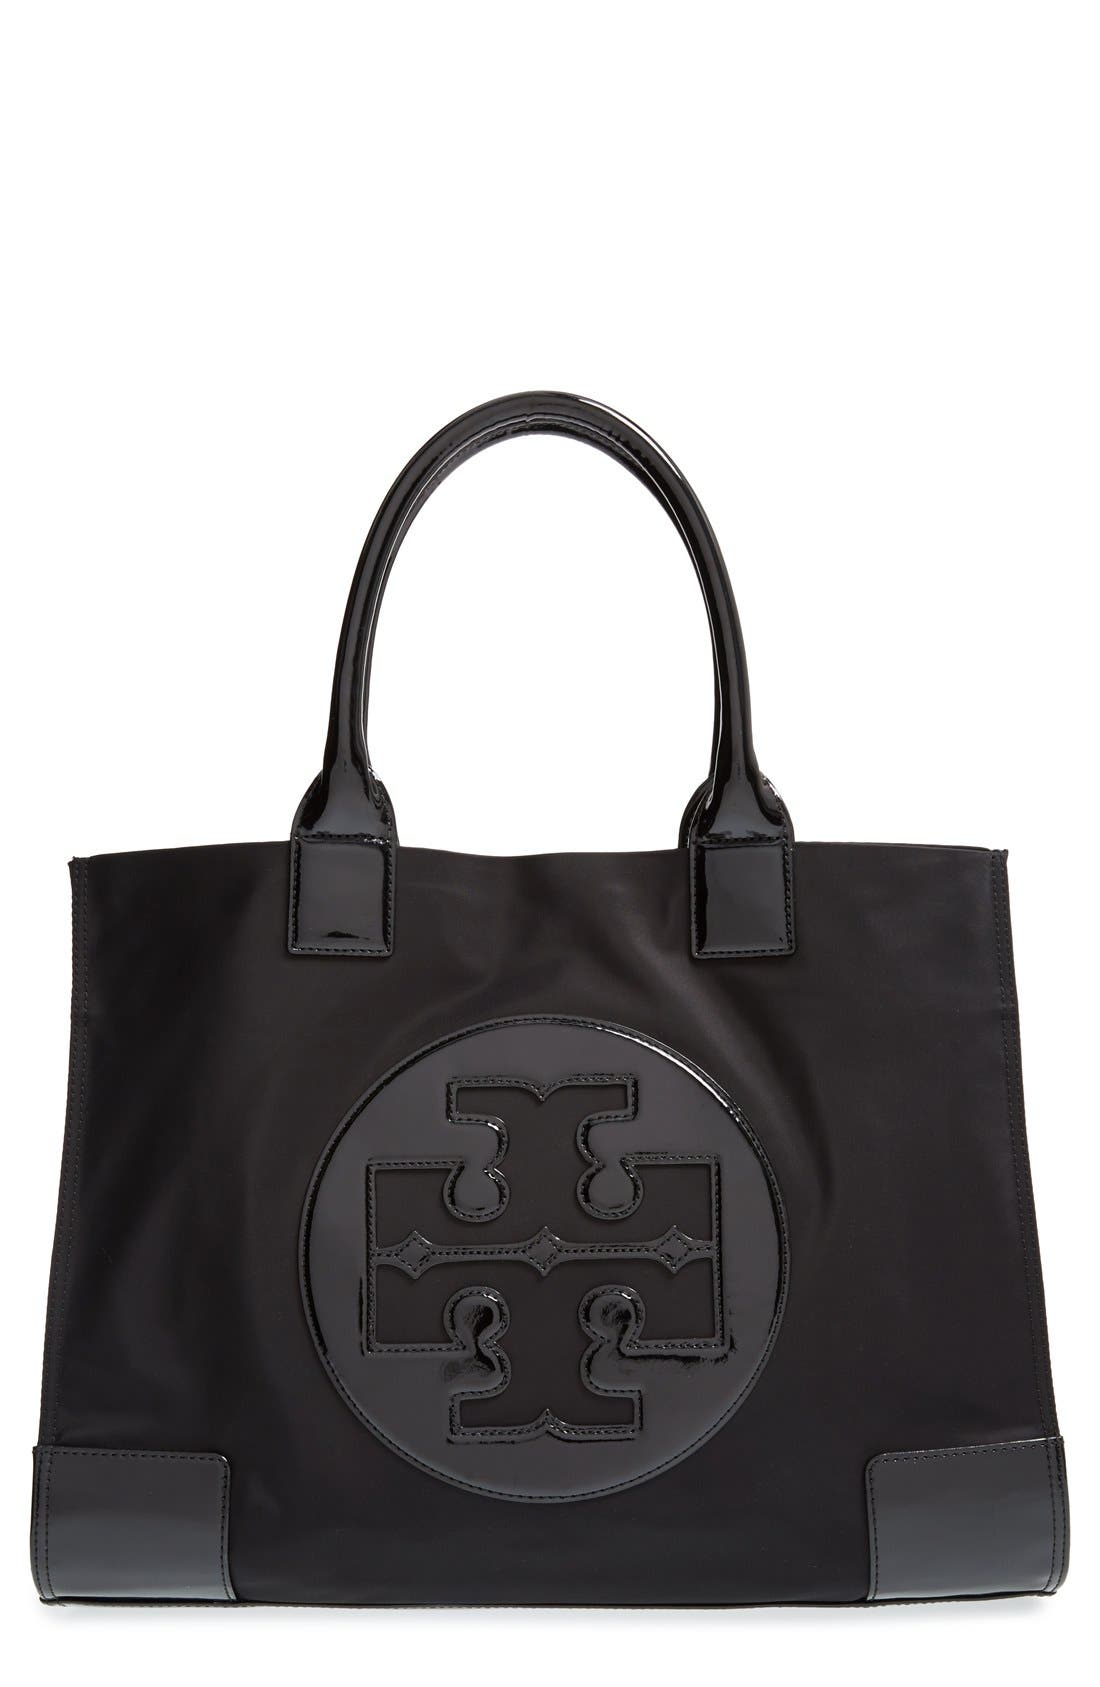 Alternate Image 1 Selected - Tory Burch 'Ella' Nylon Tote